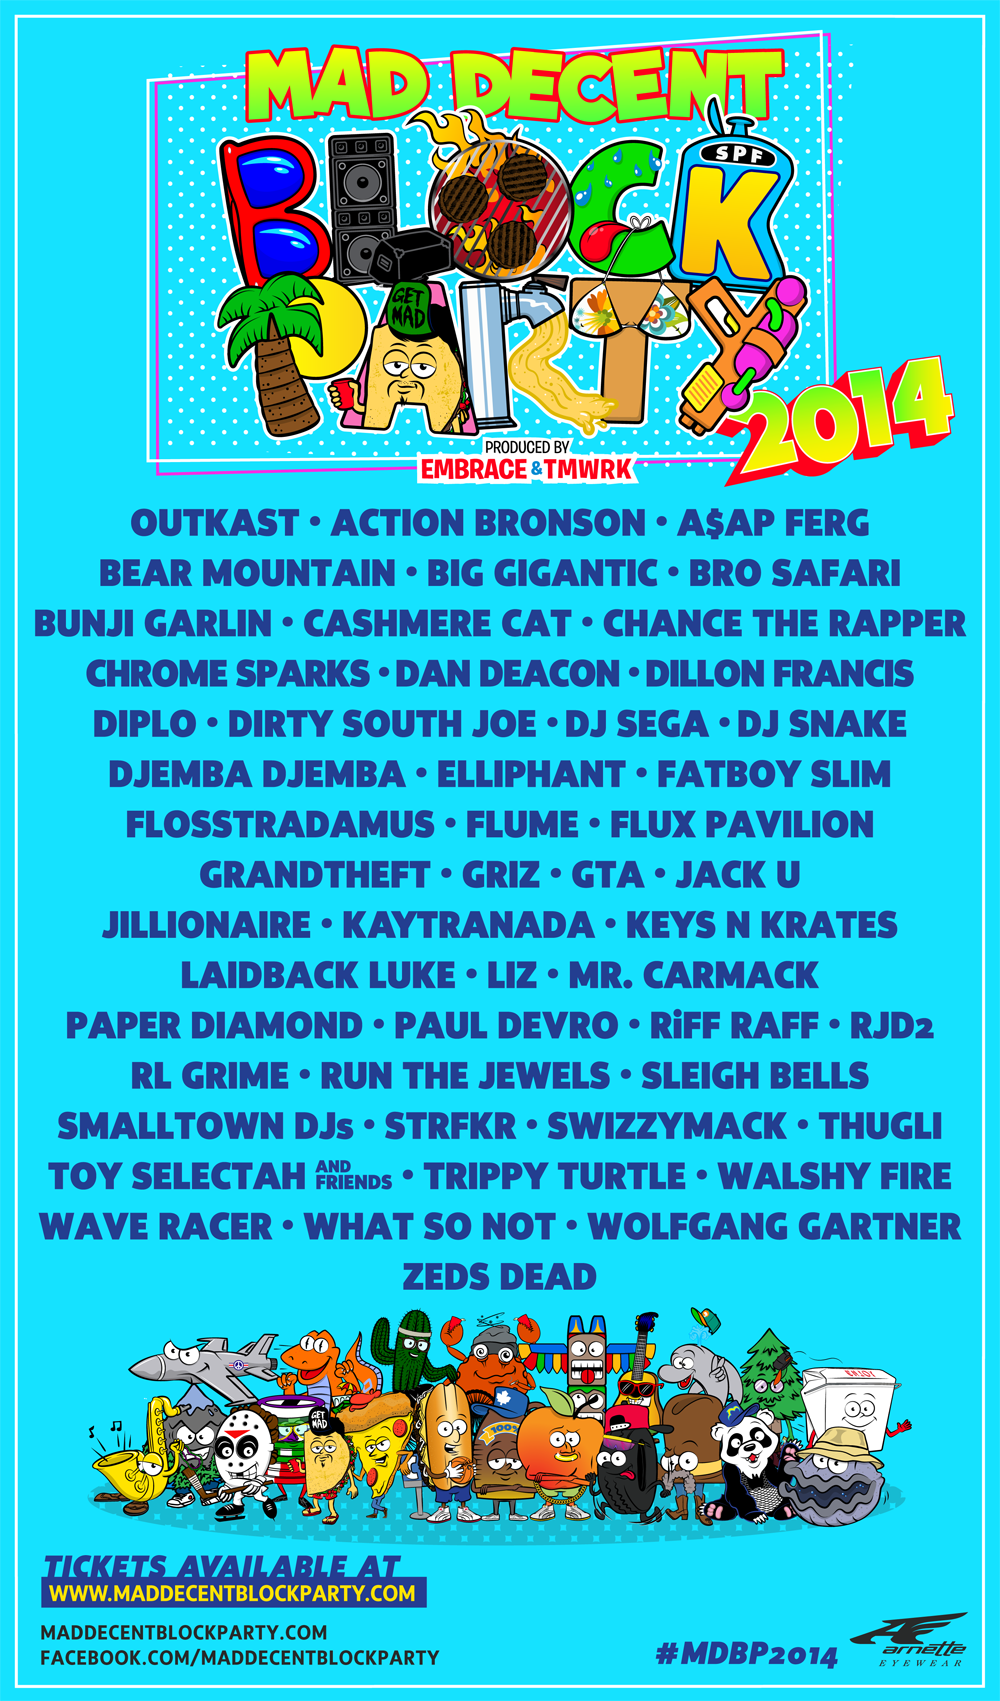 Mad Decent Block Party 2014 Lineup